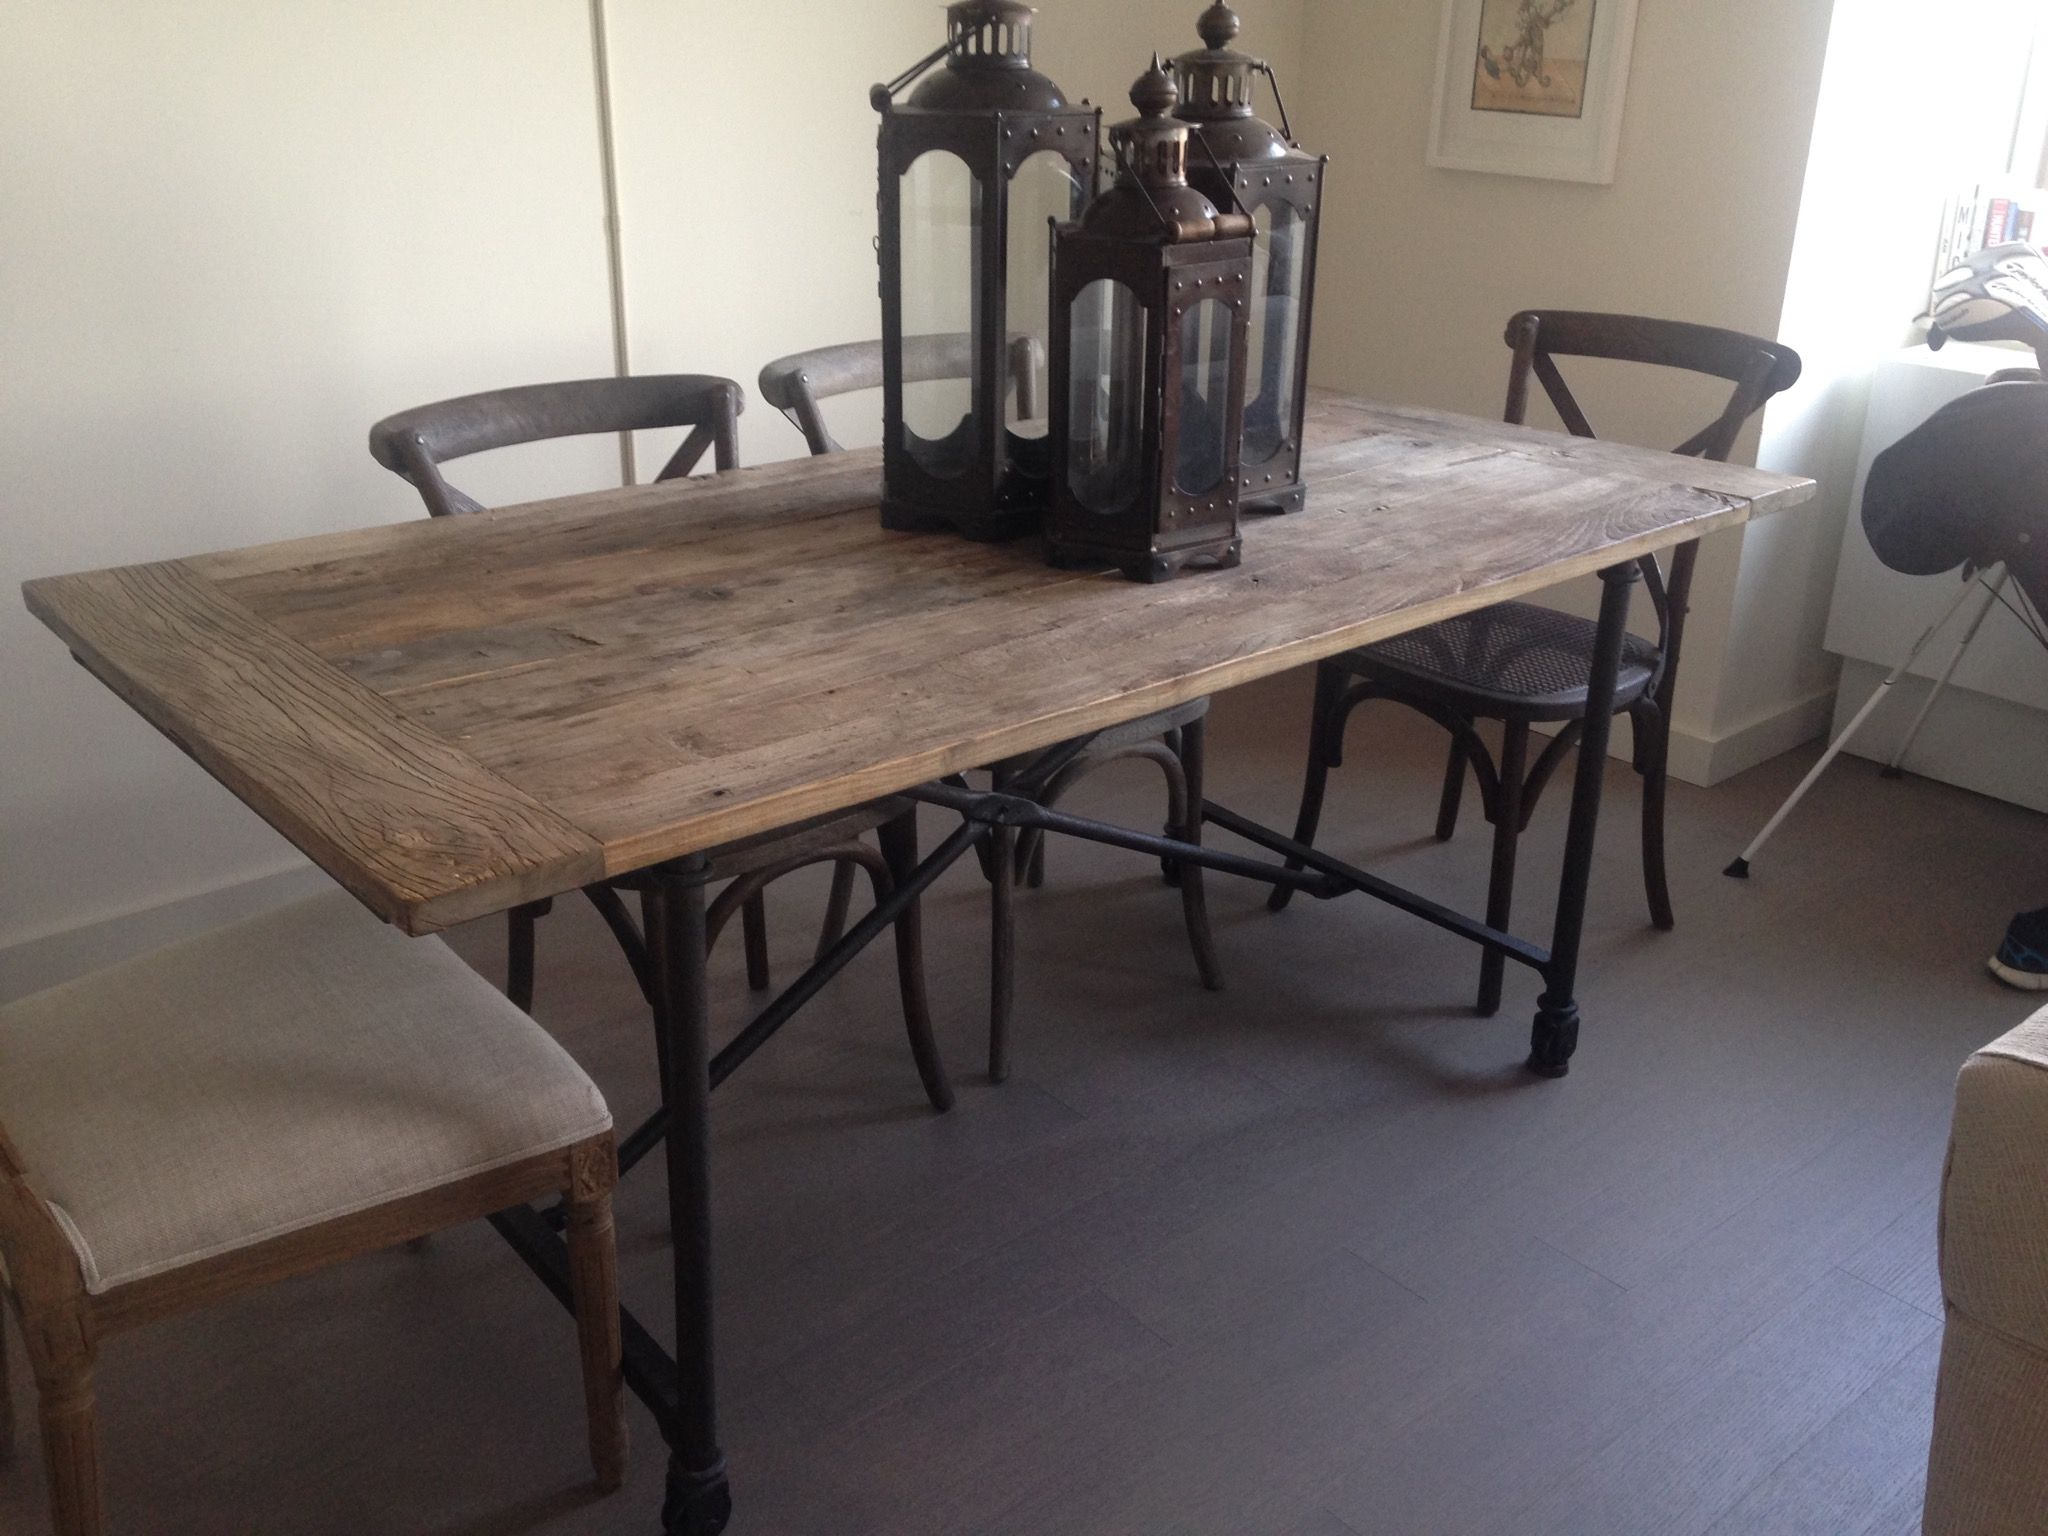 Flatiron Rectangular Dining Table Dining Table Table Rustic